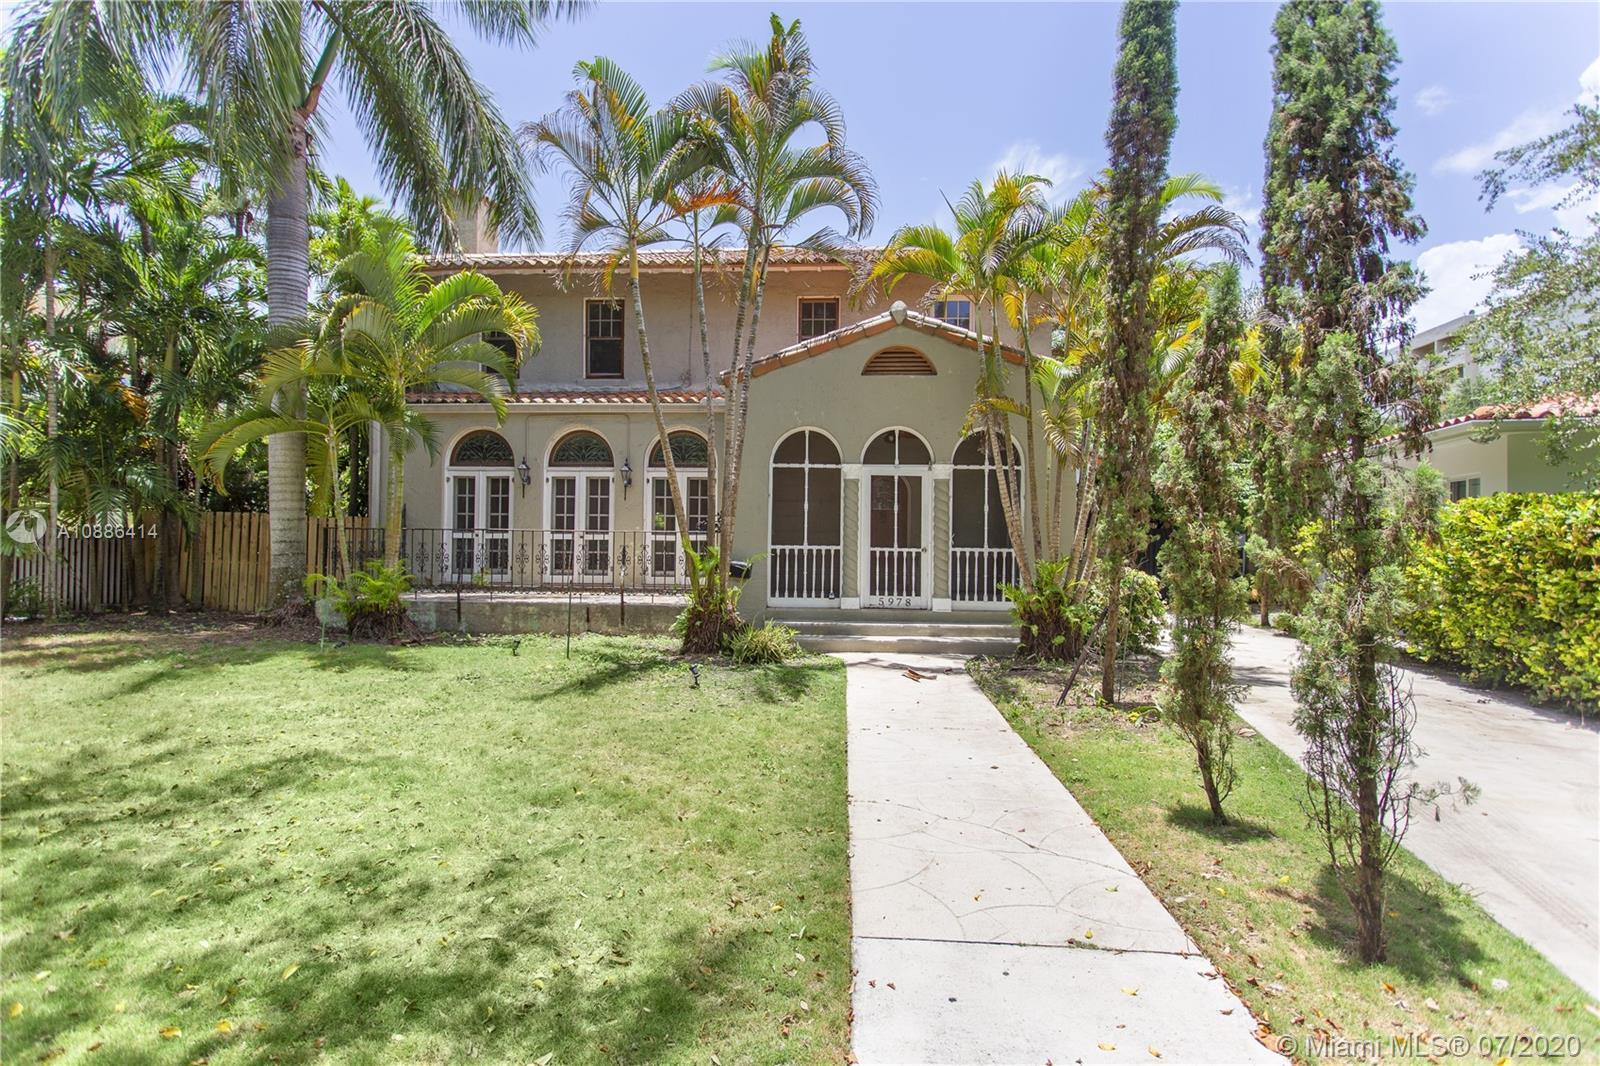 Historical Home in a gated community Two Story home  and a guest house.  Pool area is complete with